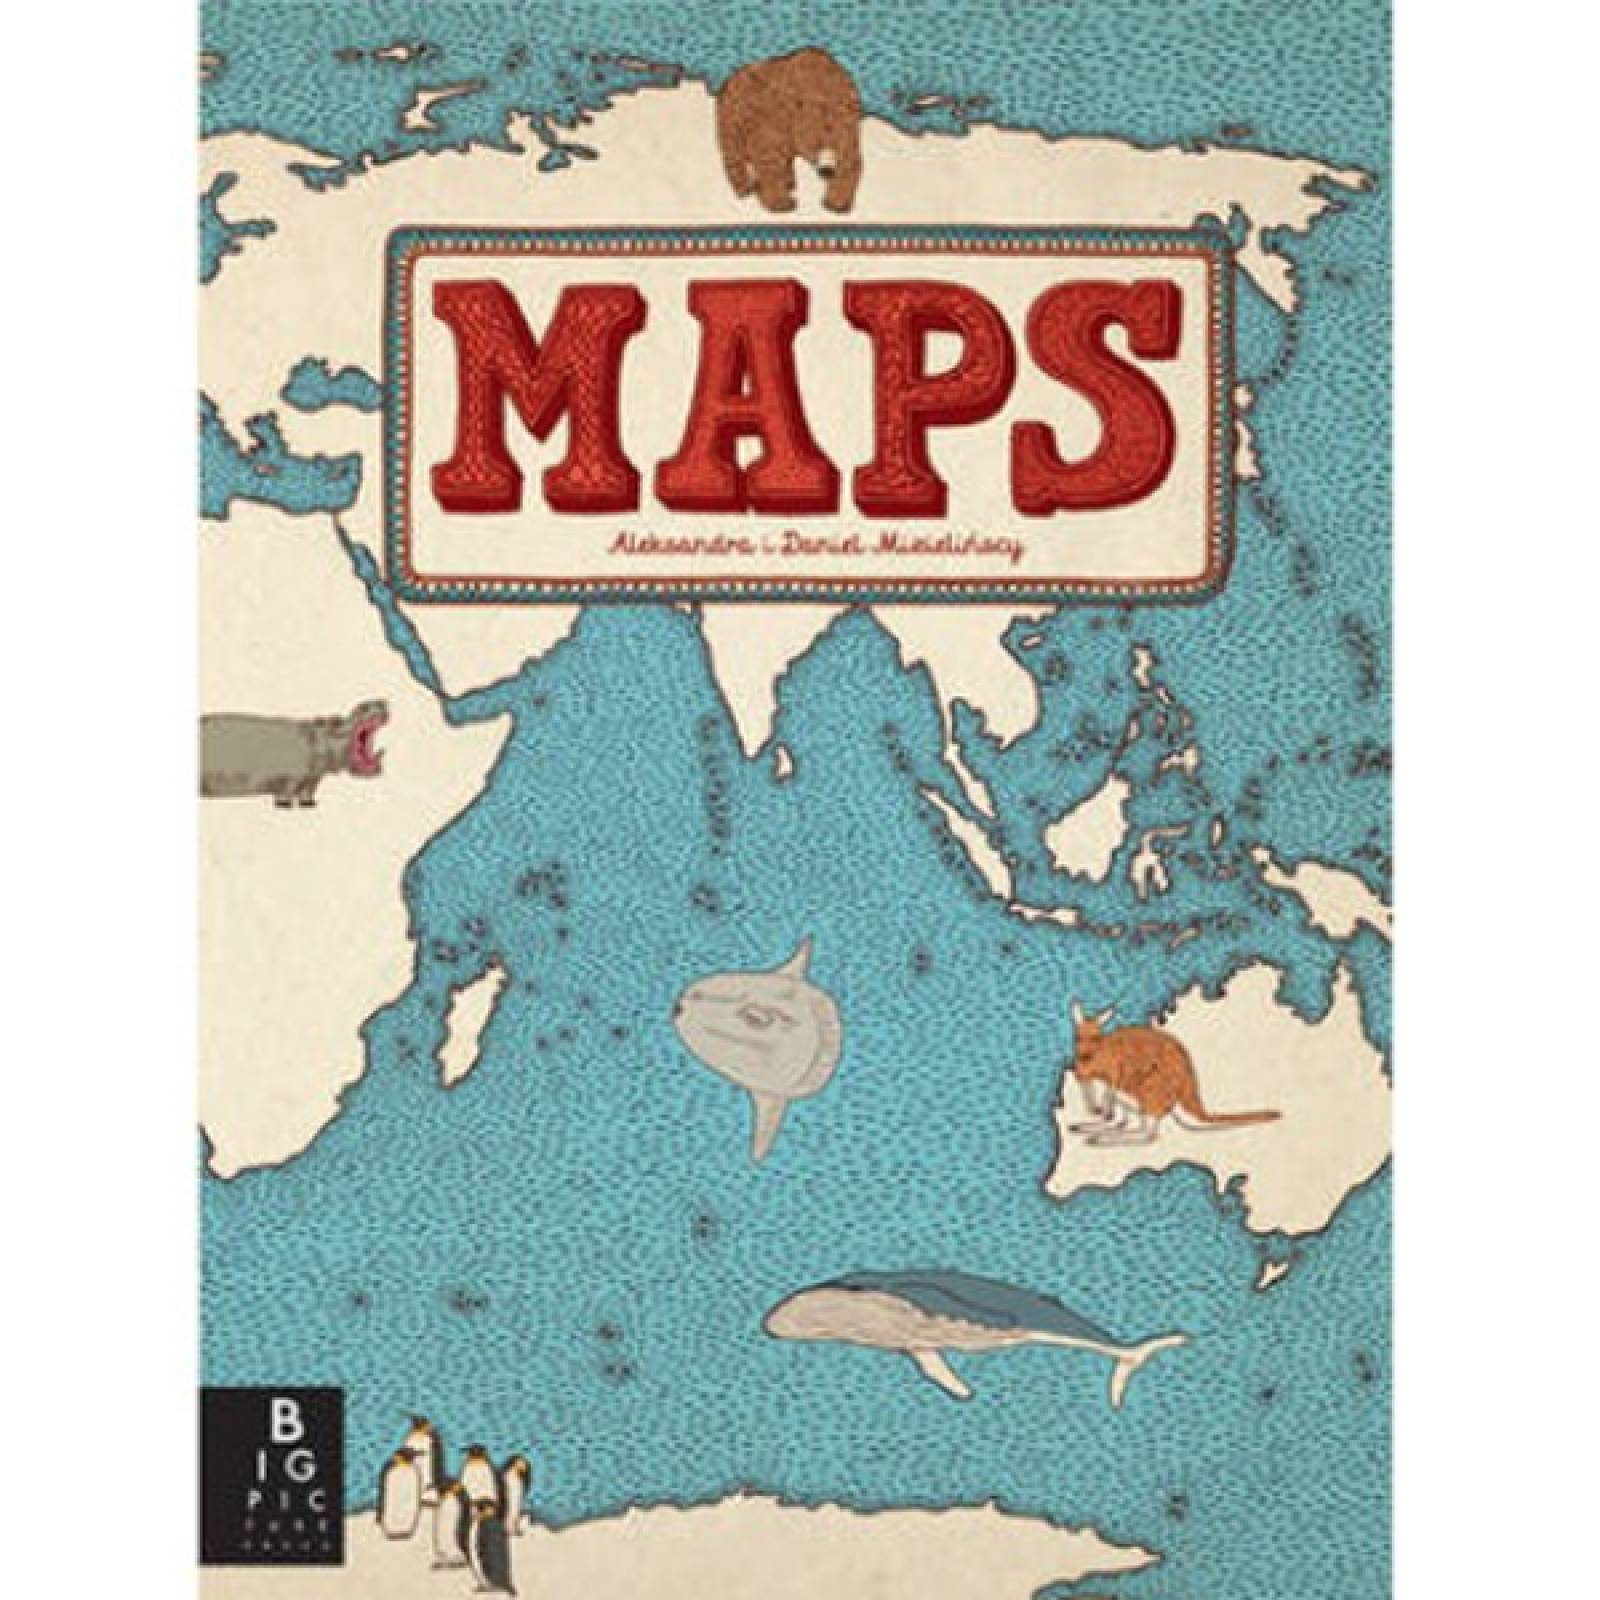 Maps Hardback Book By Aleksandra and Daniel Mizielinski thumbnails